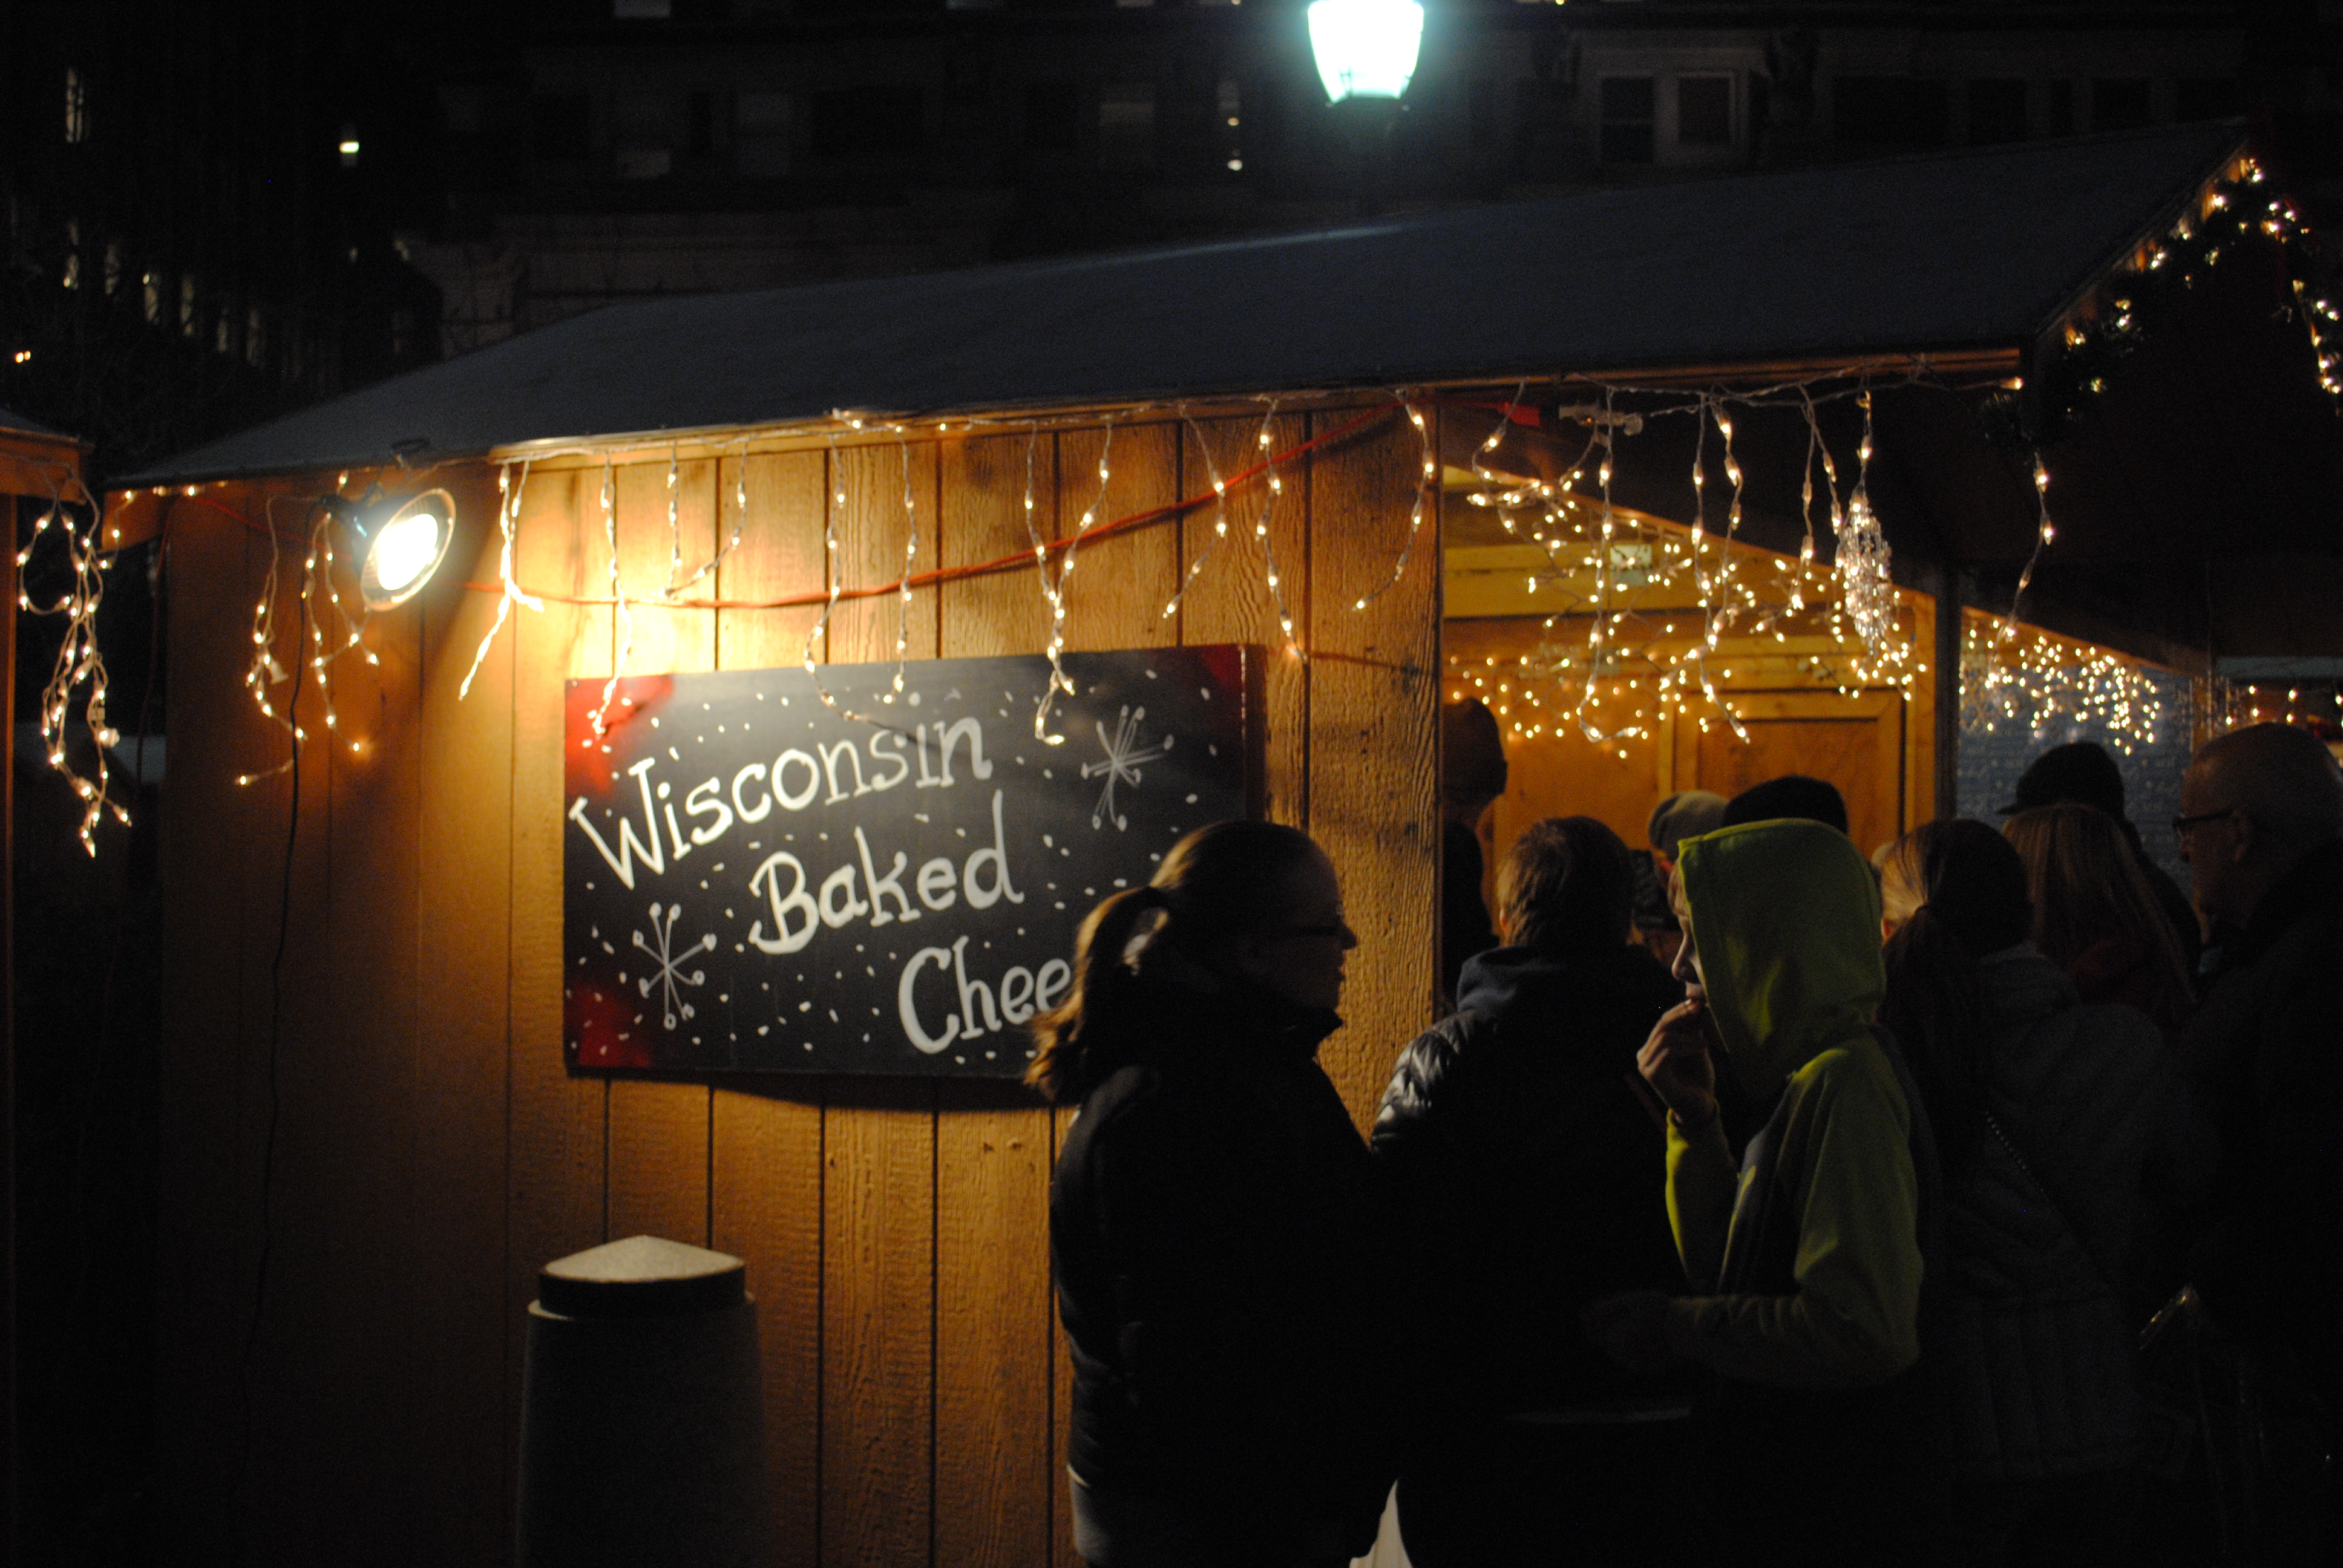 wisconsin baked hot cheese from brunkow cheese by lauren mame thomas 3 christmas village